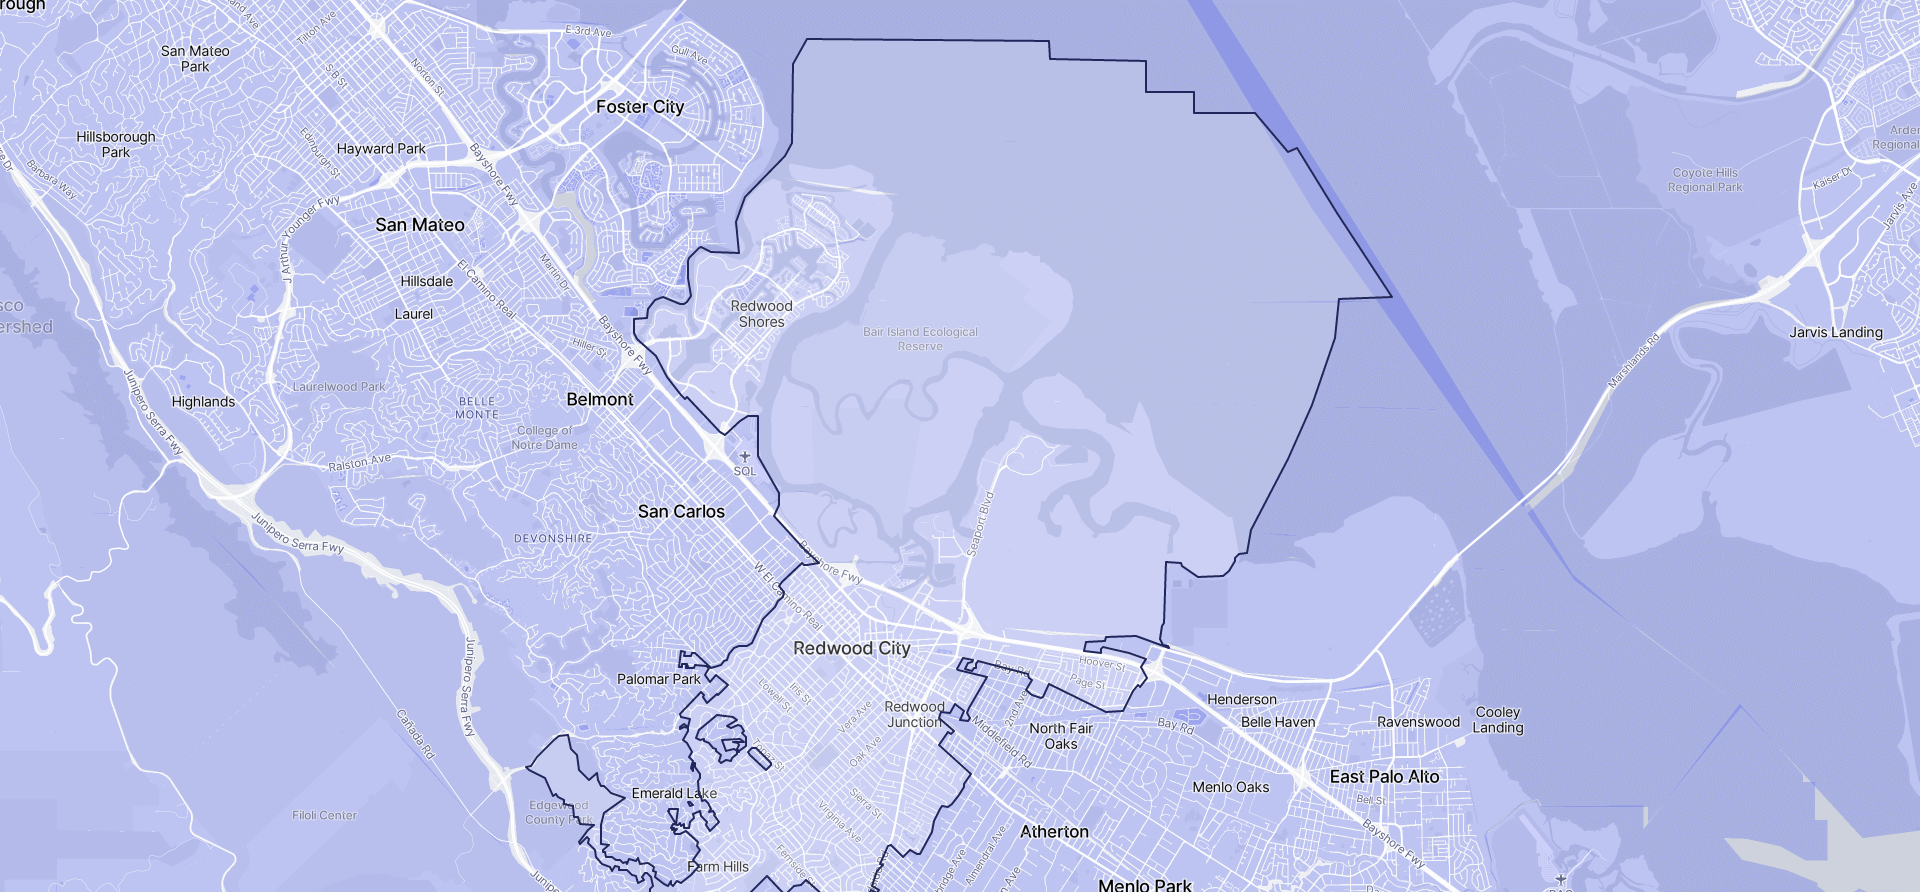 Image of Redwood City boundaries on a map.